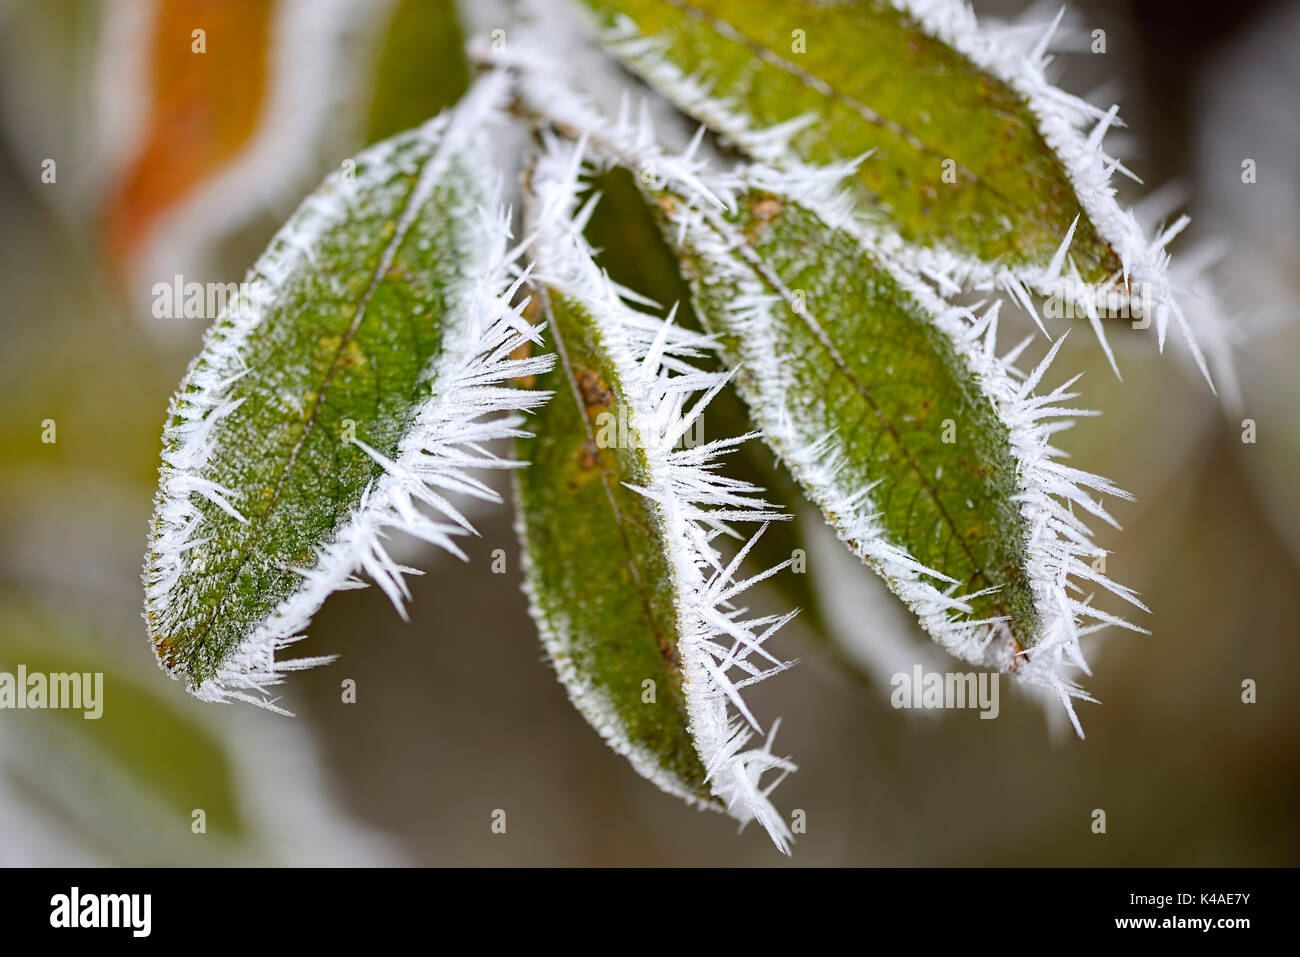 Hoarfrost On Leaves - Stock Image